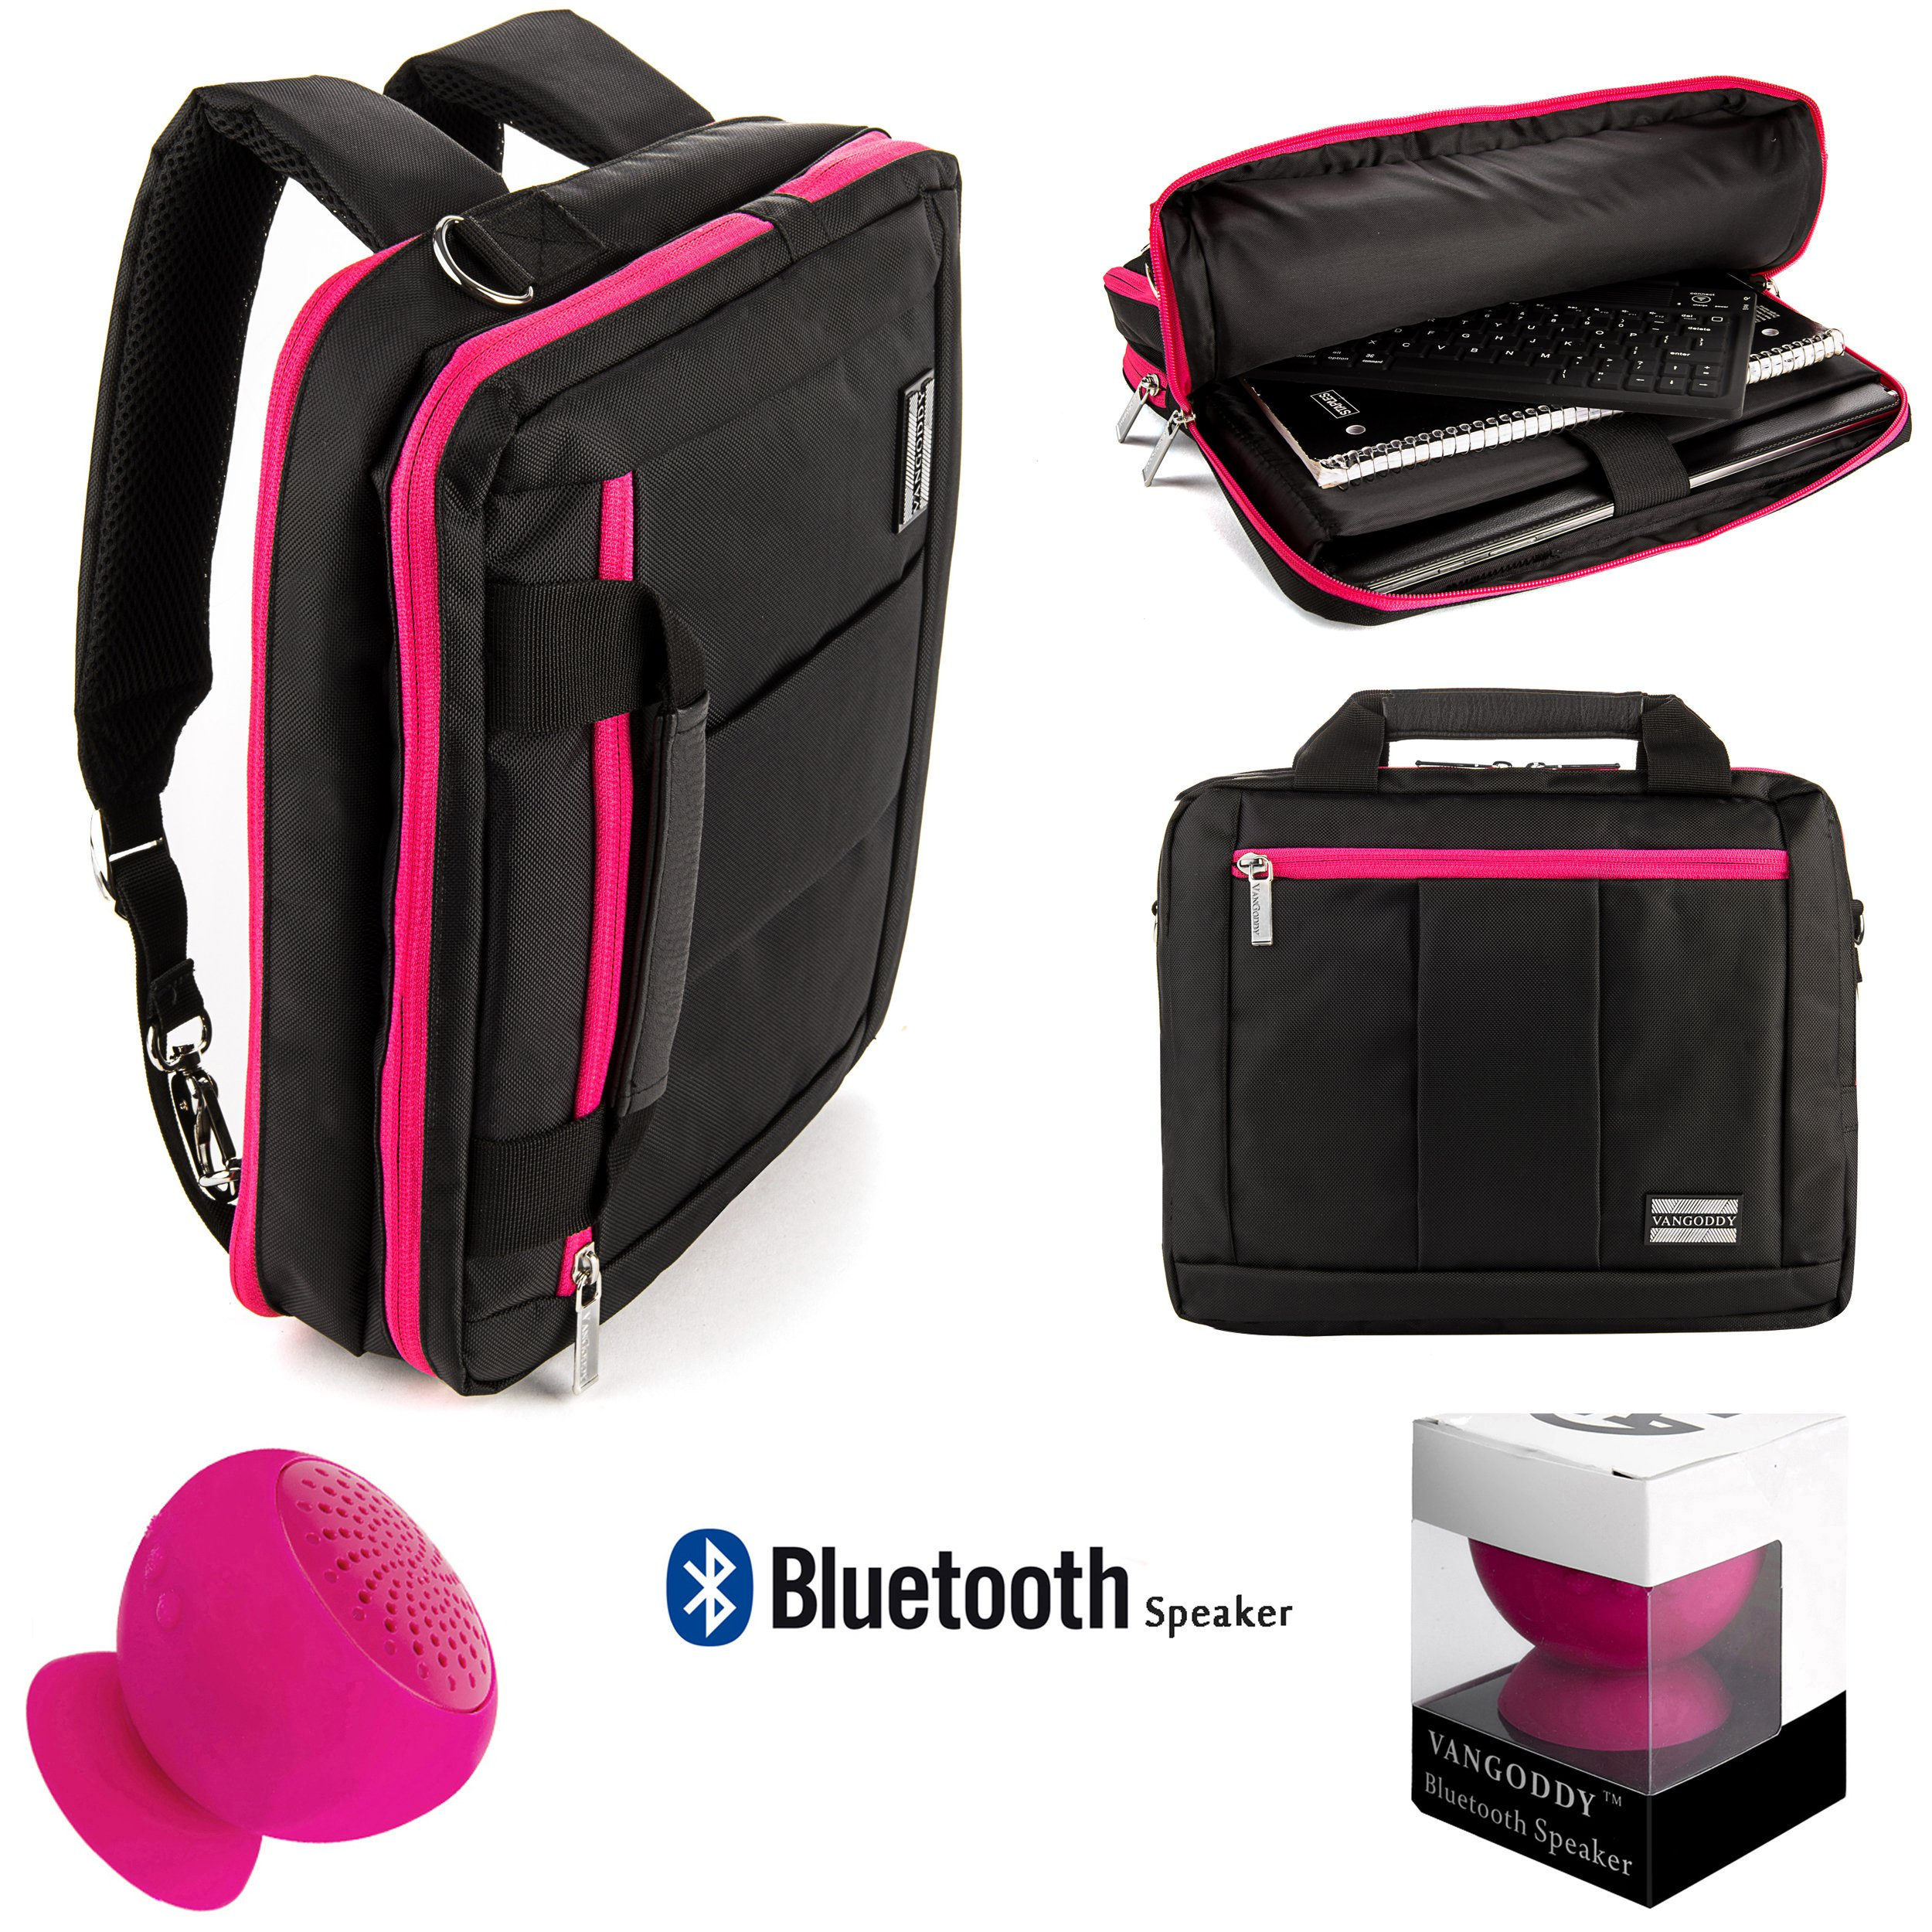 Executive Travel Carrying Bag, Messenger Bag & Backpack For Samsung Galaxy Tab PRO / Galaxy Note PRO 12.2'' Tablet + Pink Bluetooth Suction Speaker by Vangoddy (Image #1)